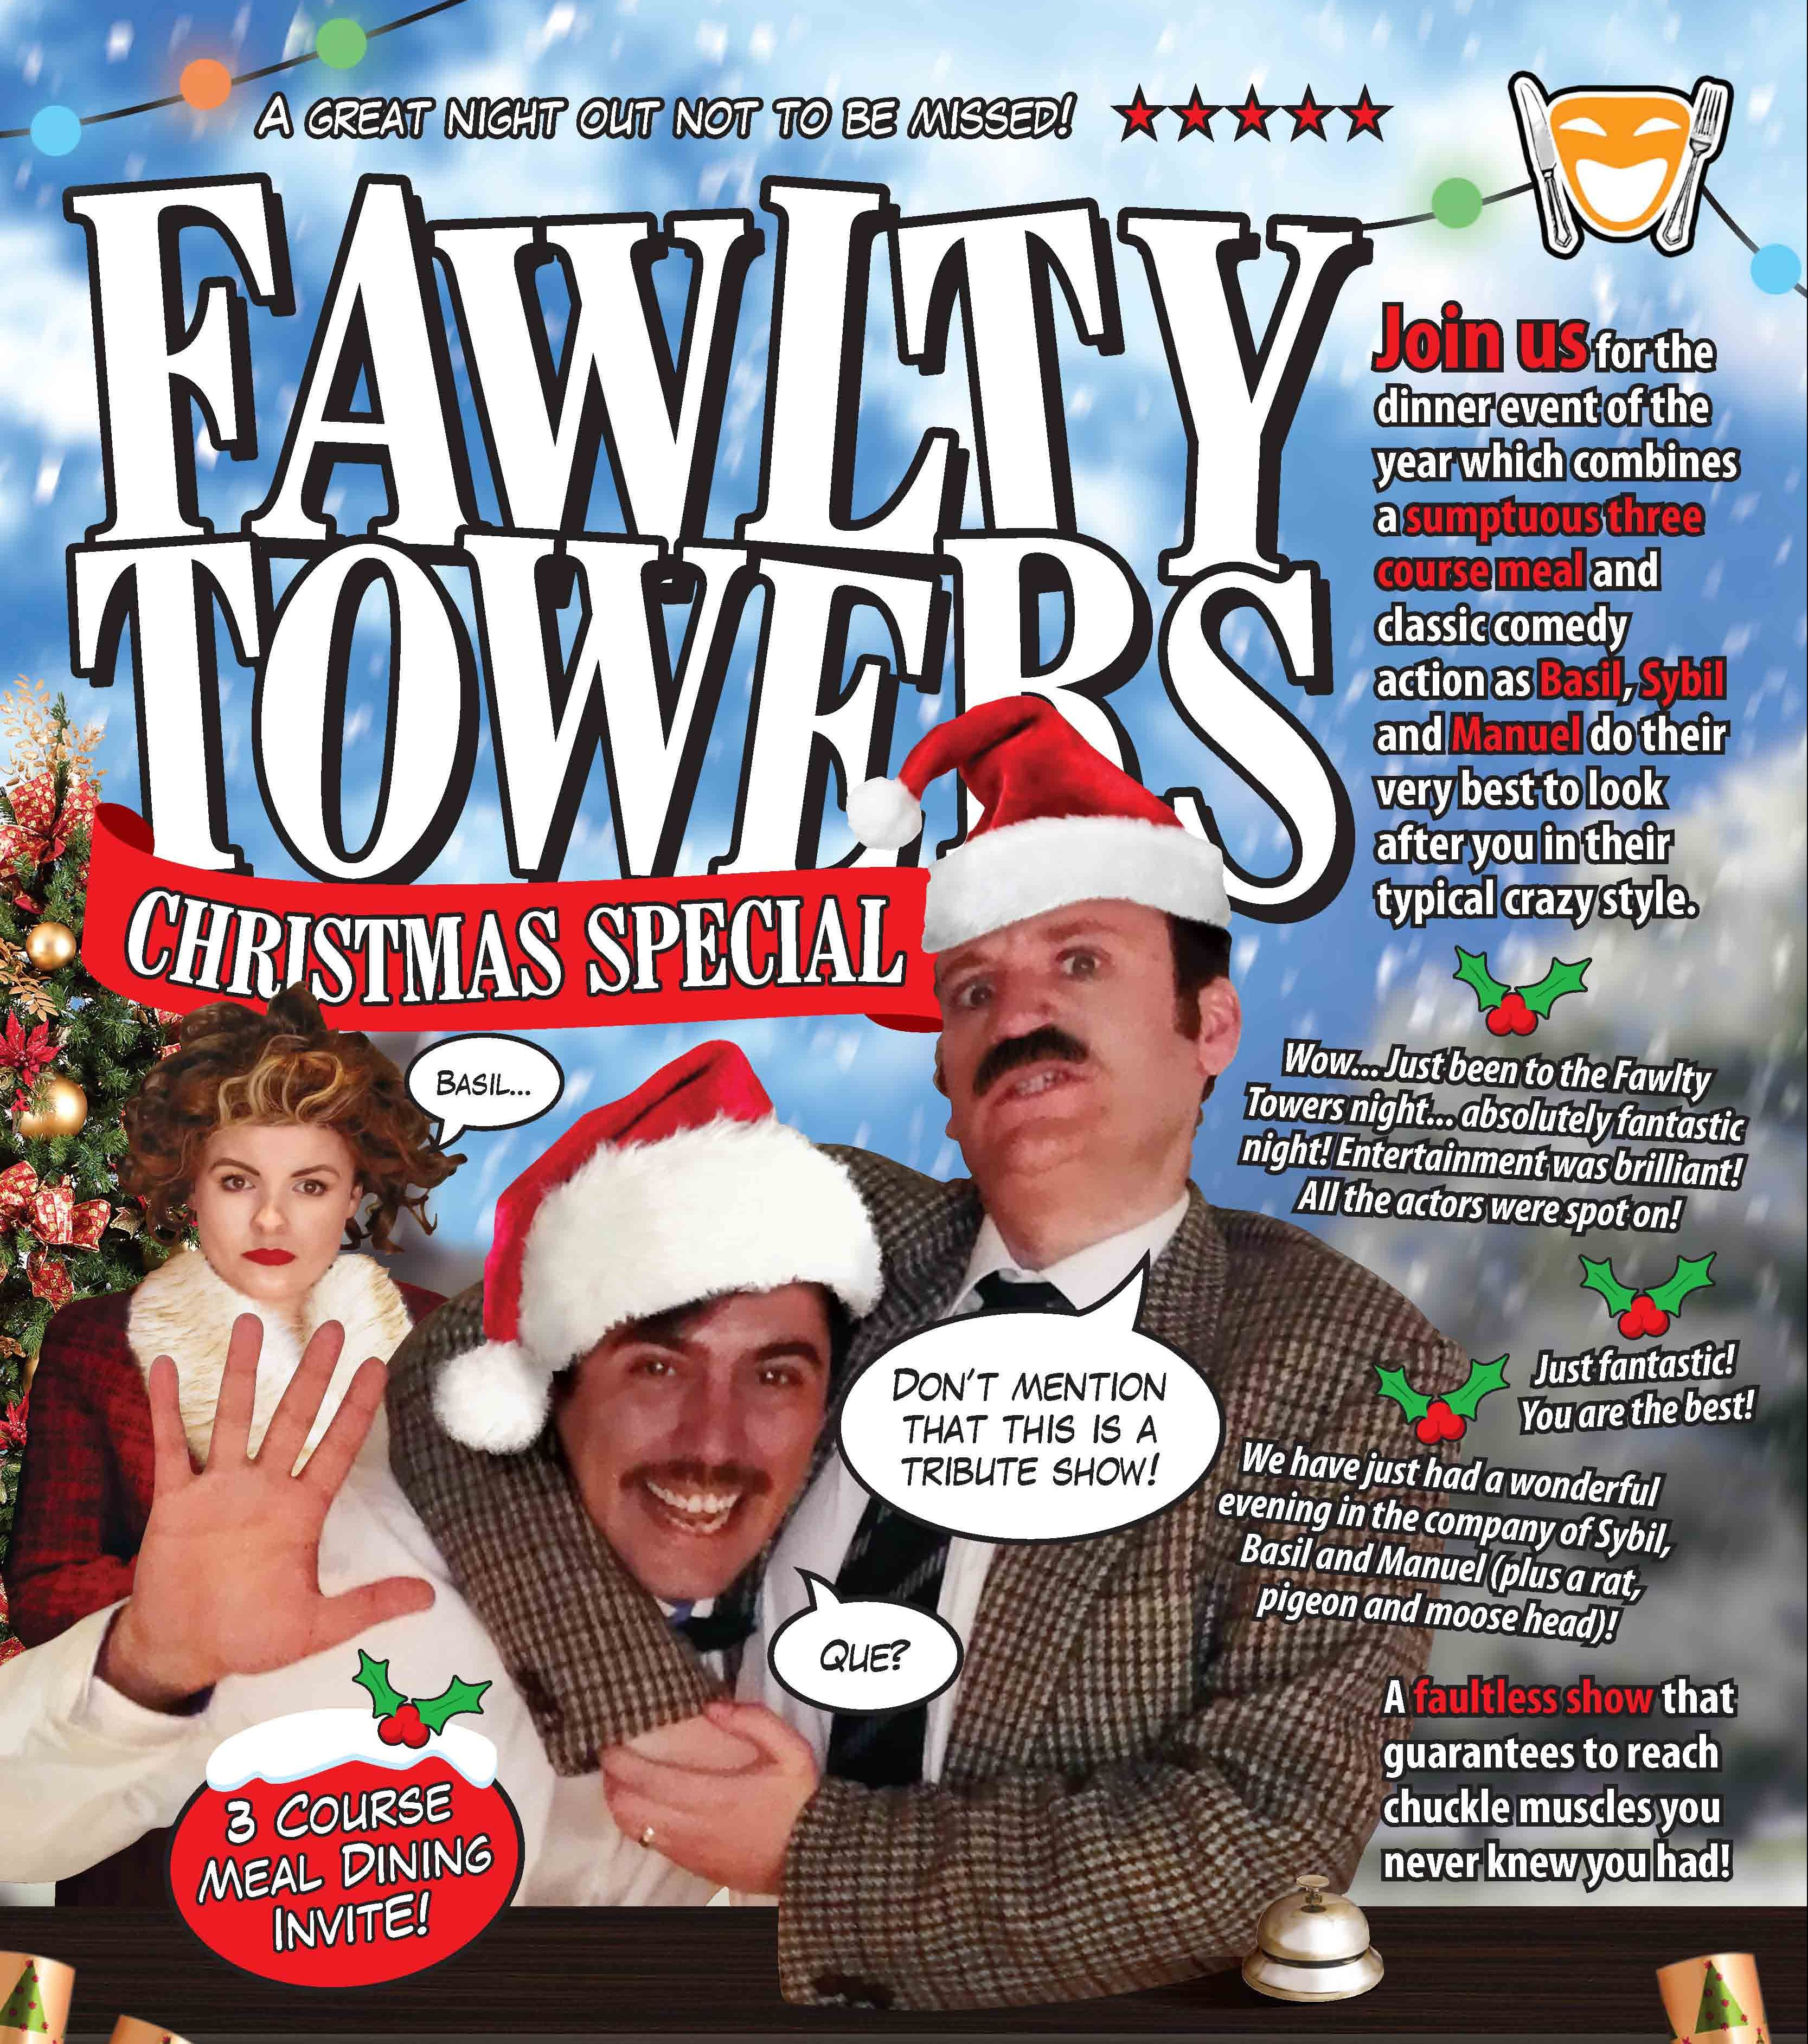 //www.greyhoundinn.co.uk/wp-content/uploads/2019/10/Fawlty-Towers-v7-Xmas-Poster-2019-e1571403812965.jpg